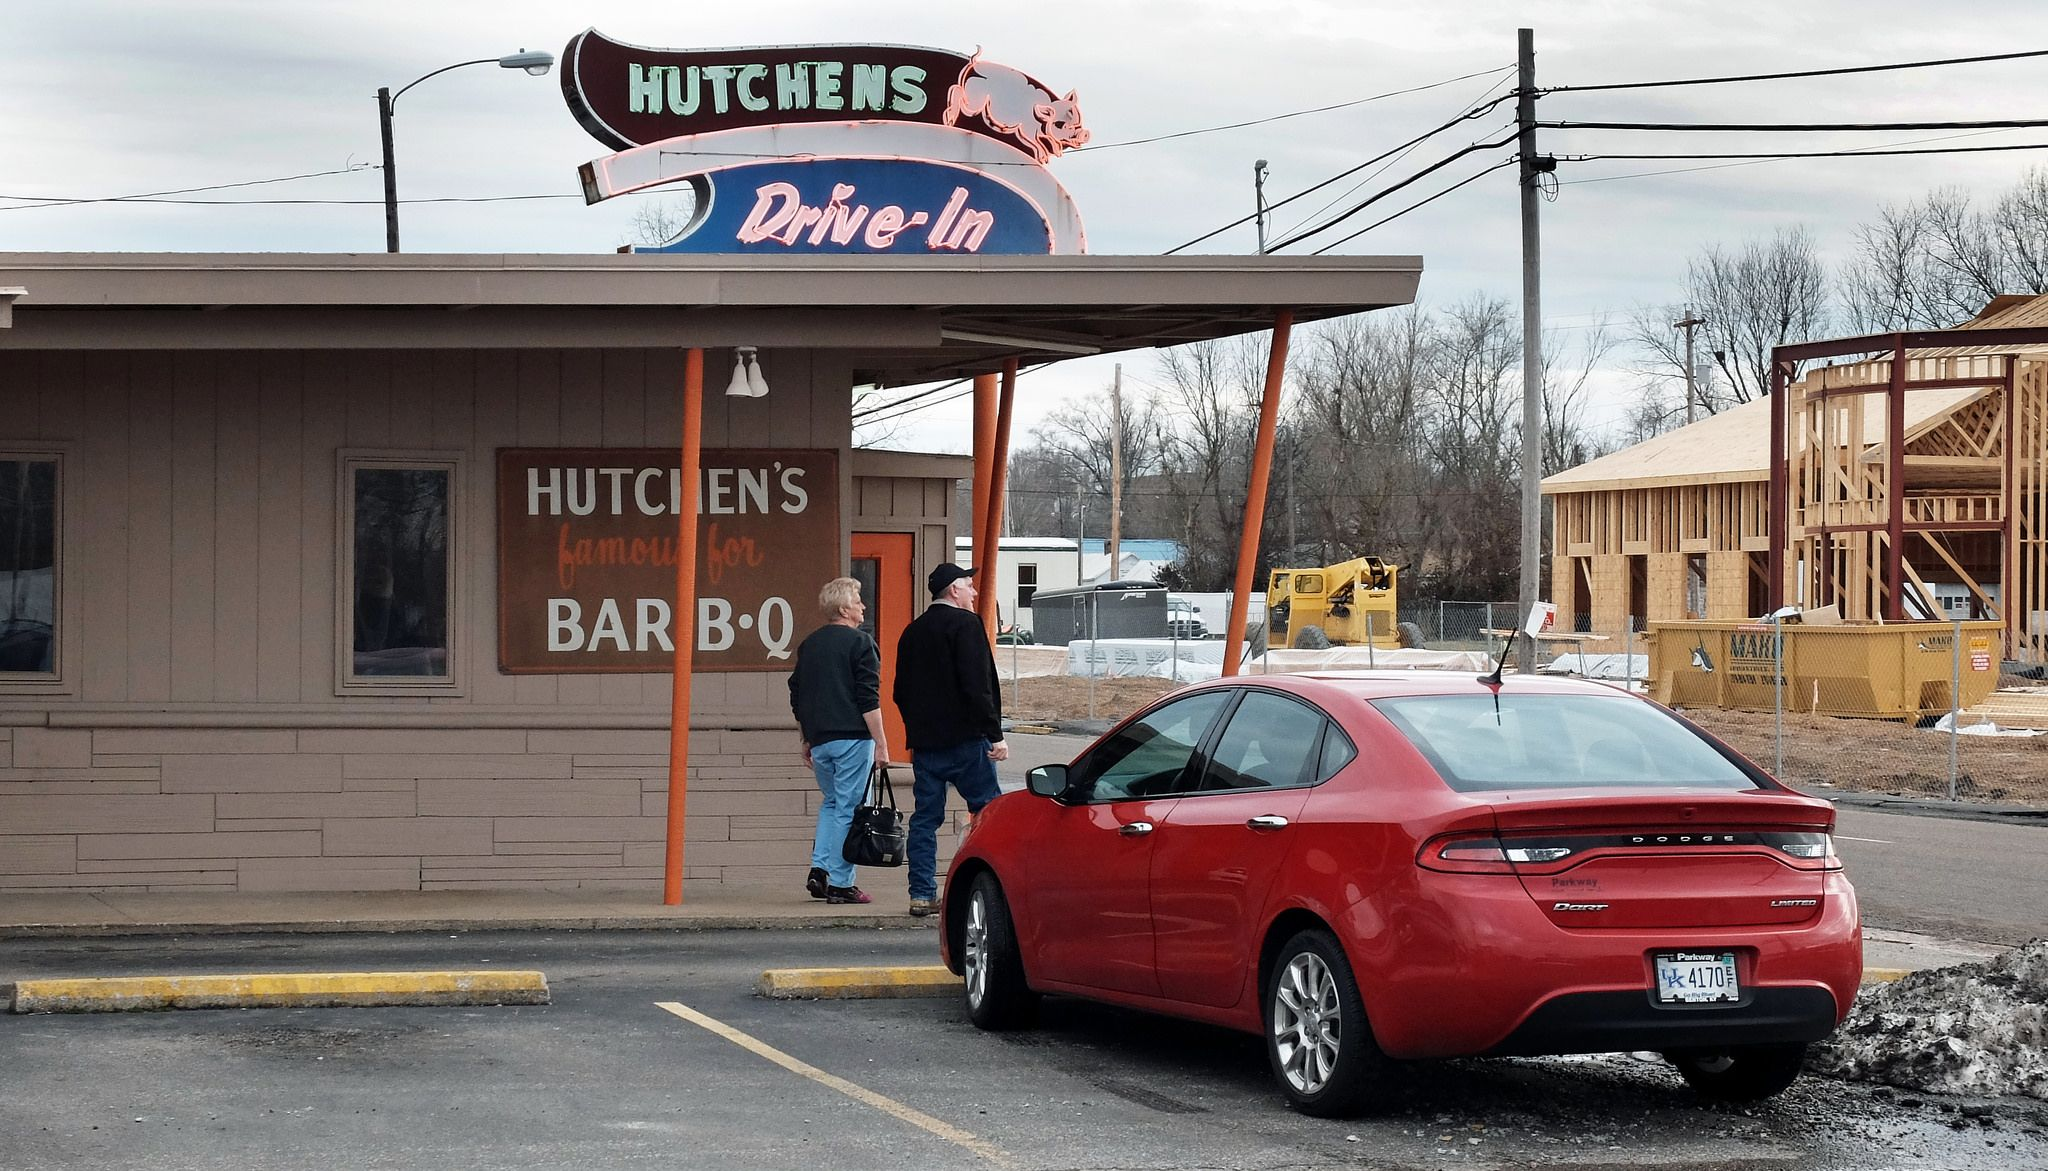 Hutchens Bbq Benton Ky With Images Places In America Benton